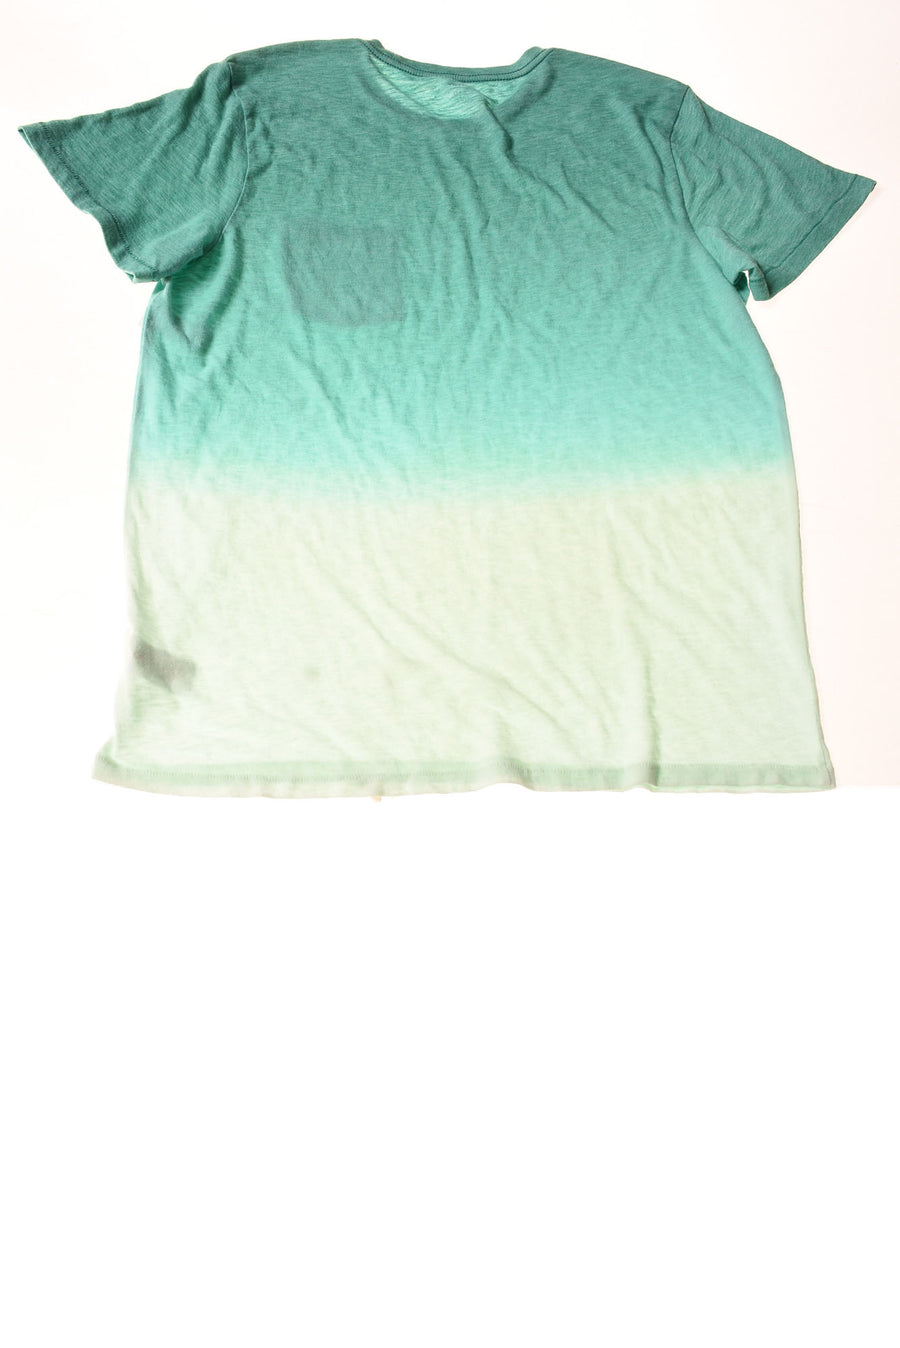 NEW Old Navy Men's Shirt Large Green